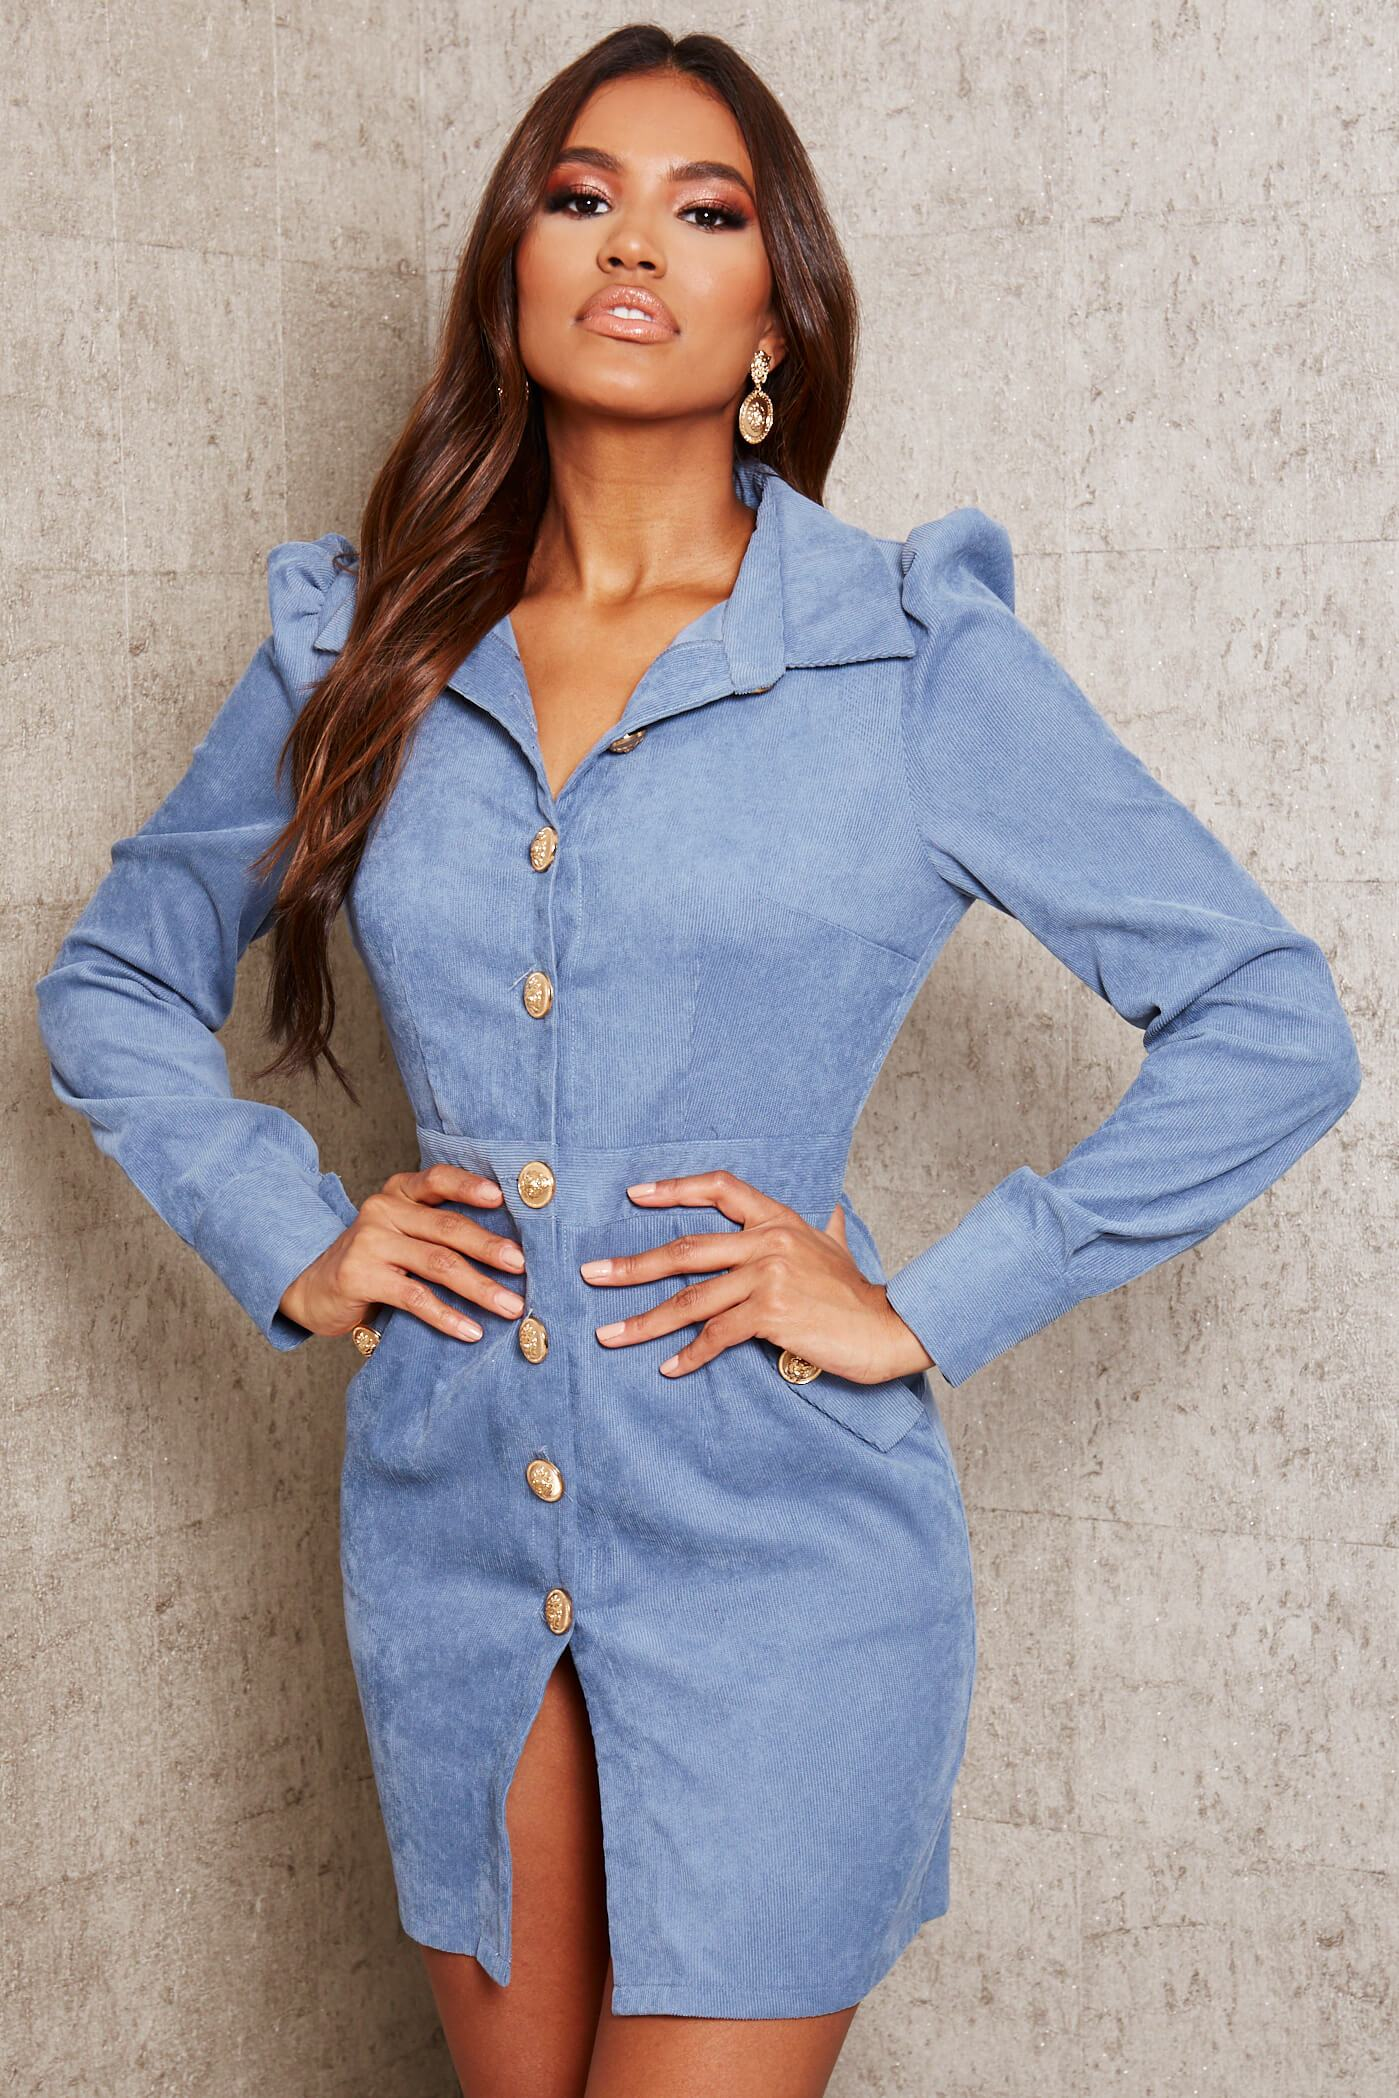 Baby Blue Cord Military Button Front Blazer Dress - 4 / BLUE von ISAWITFIRST.com